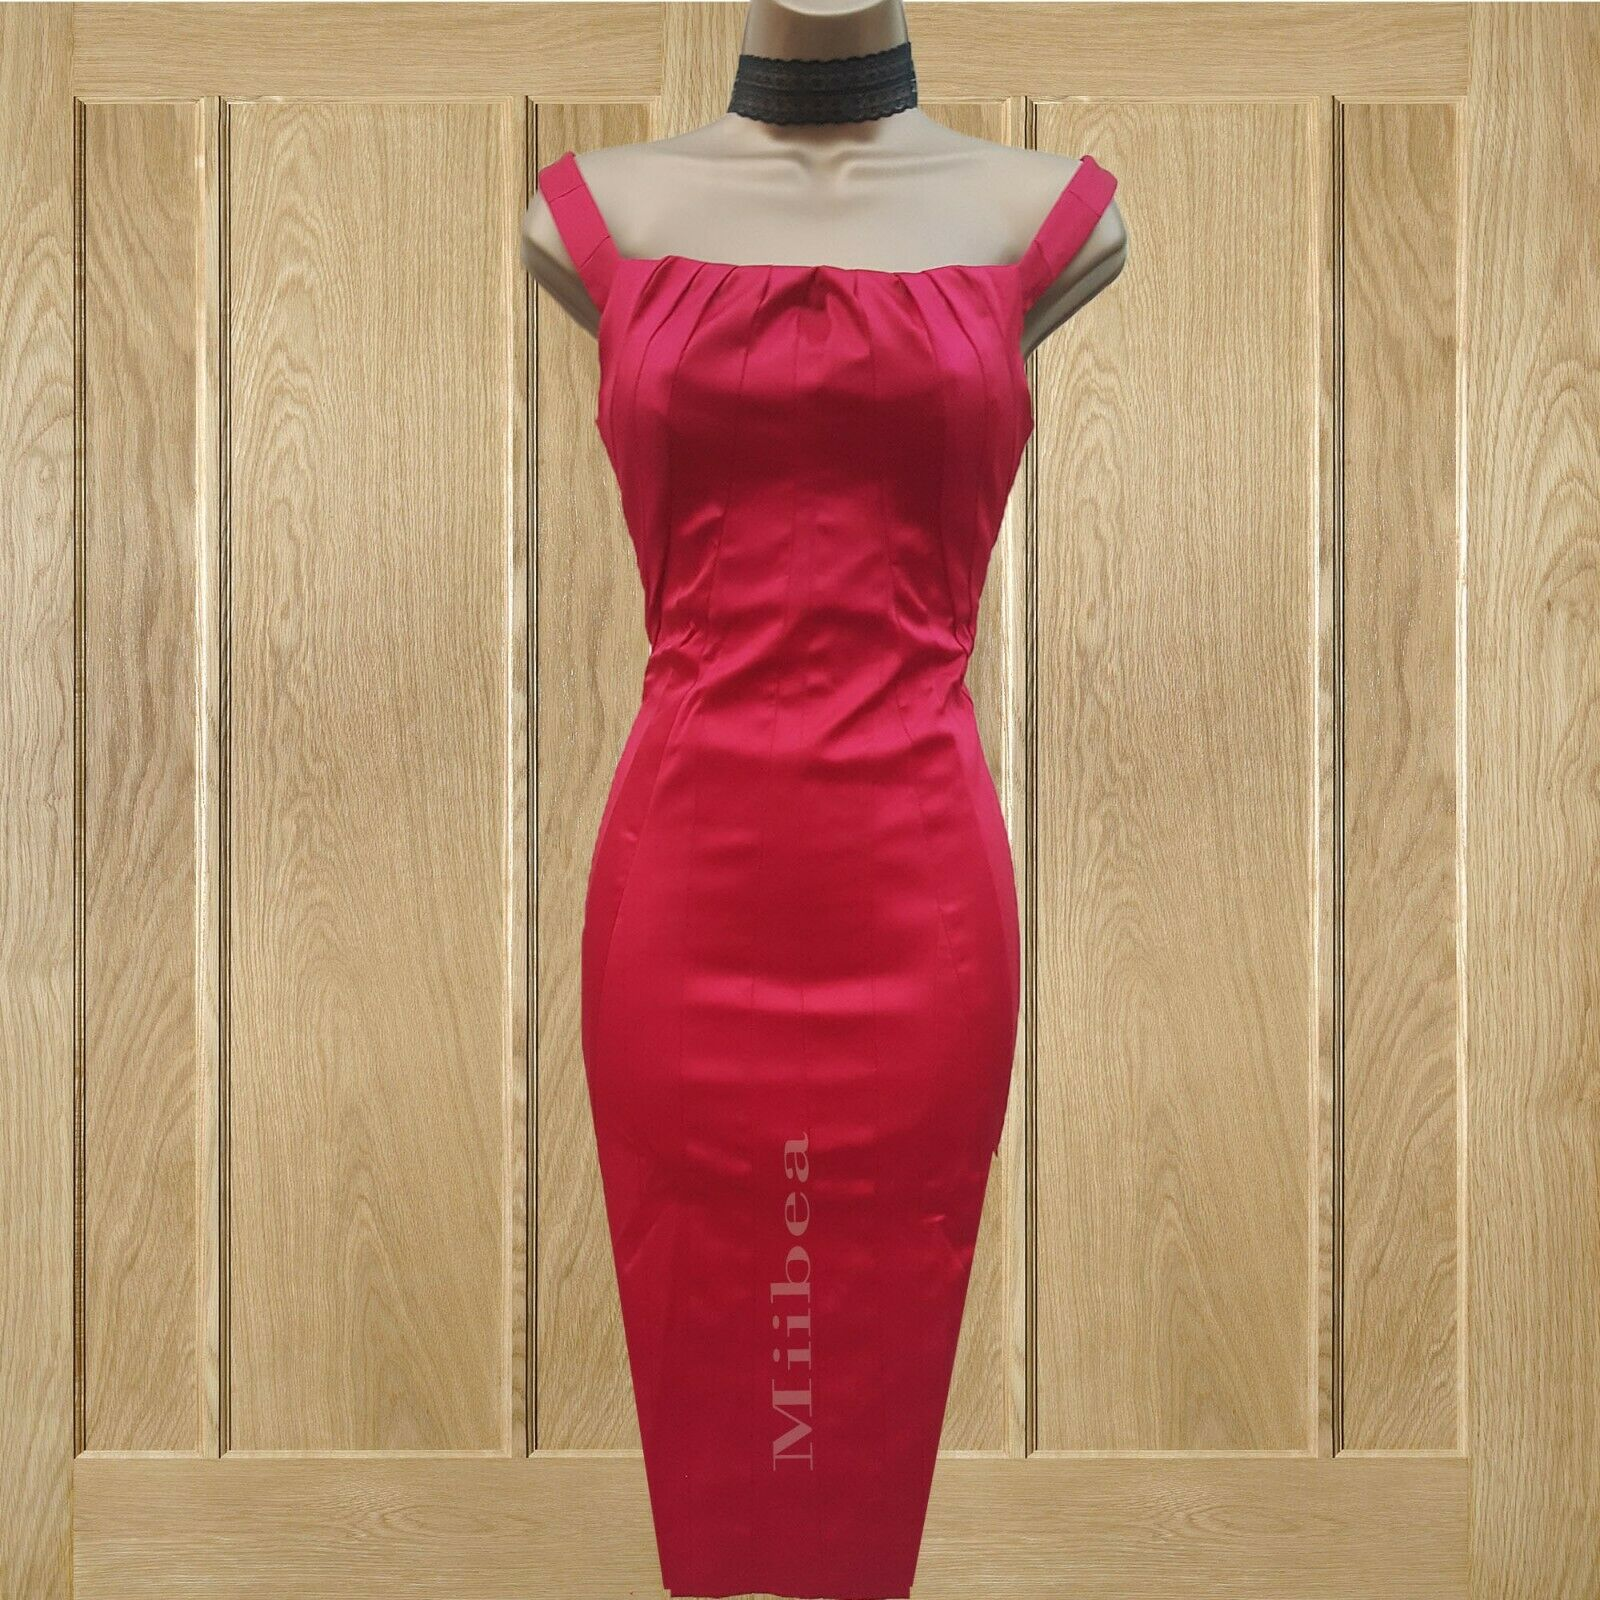 KAREN MILLEN Rosa Fuchsia Satin Pleat Wiggle Pencil Dress 10 UK Races Wedding